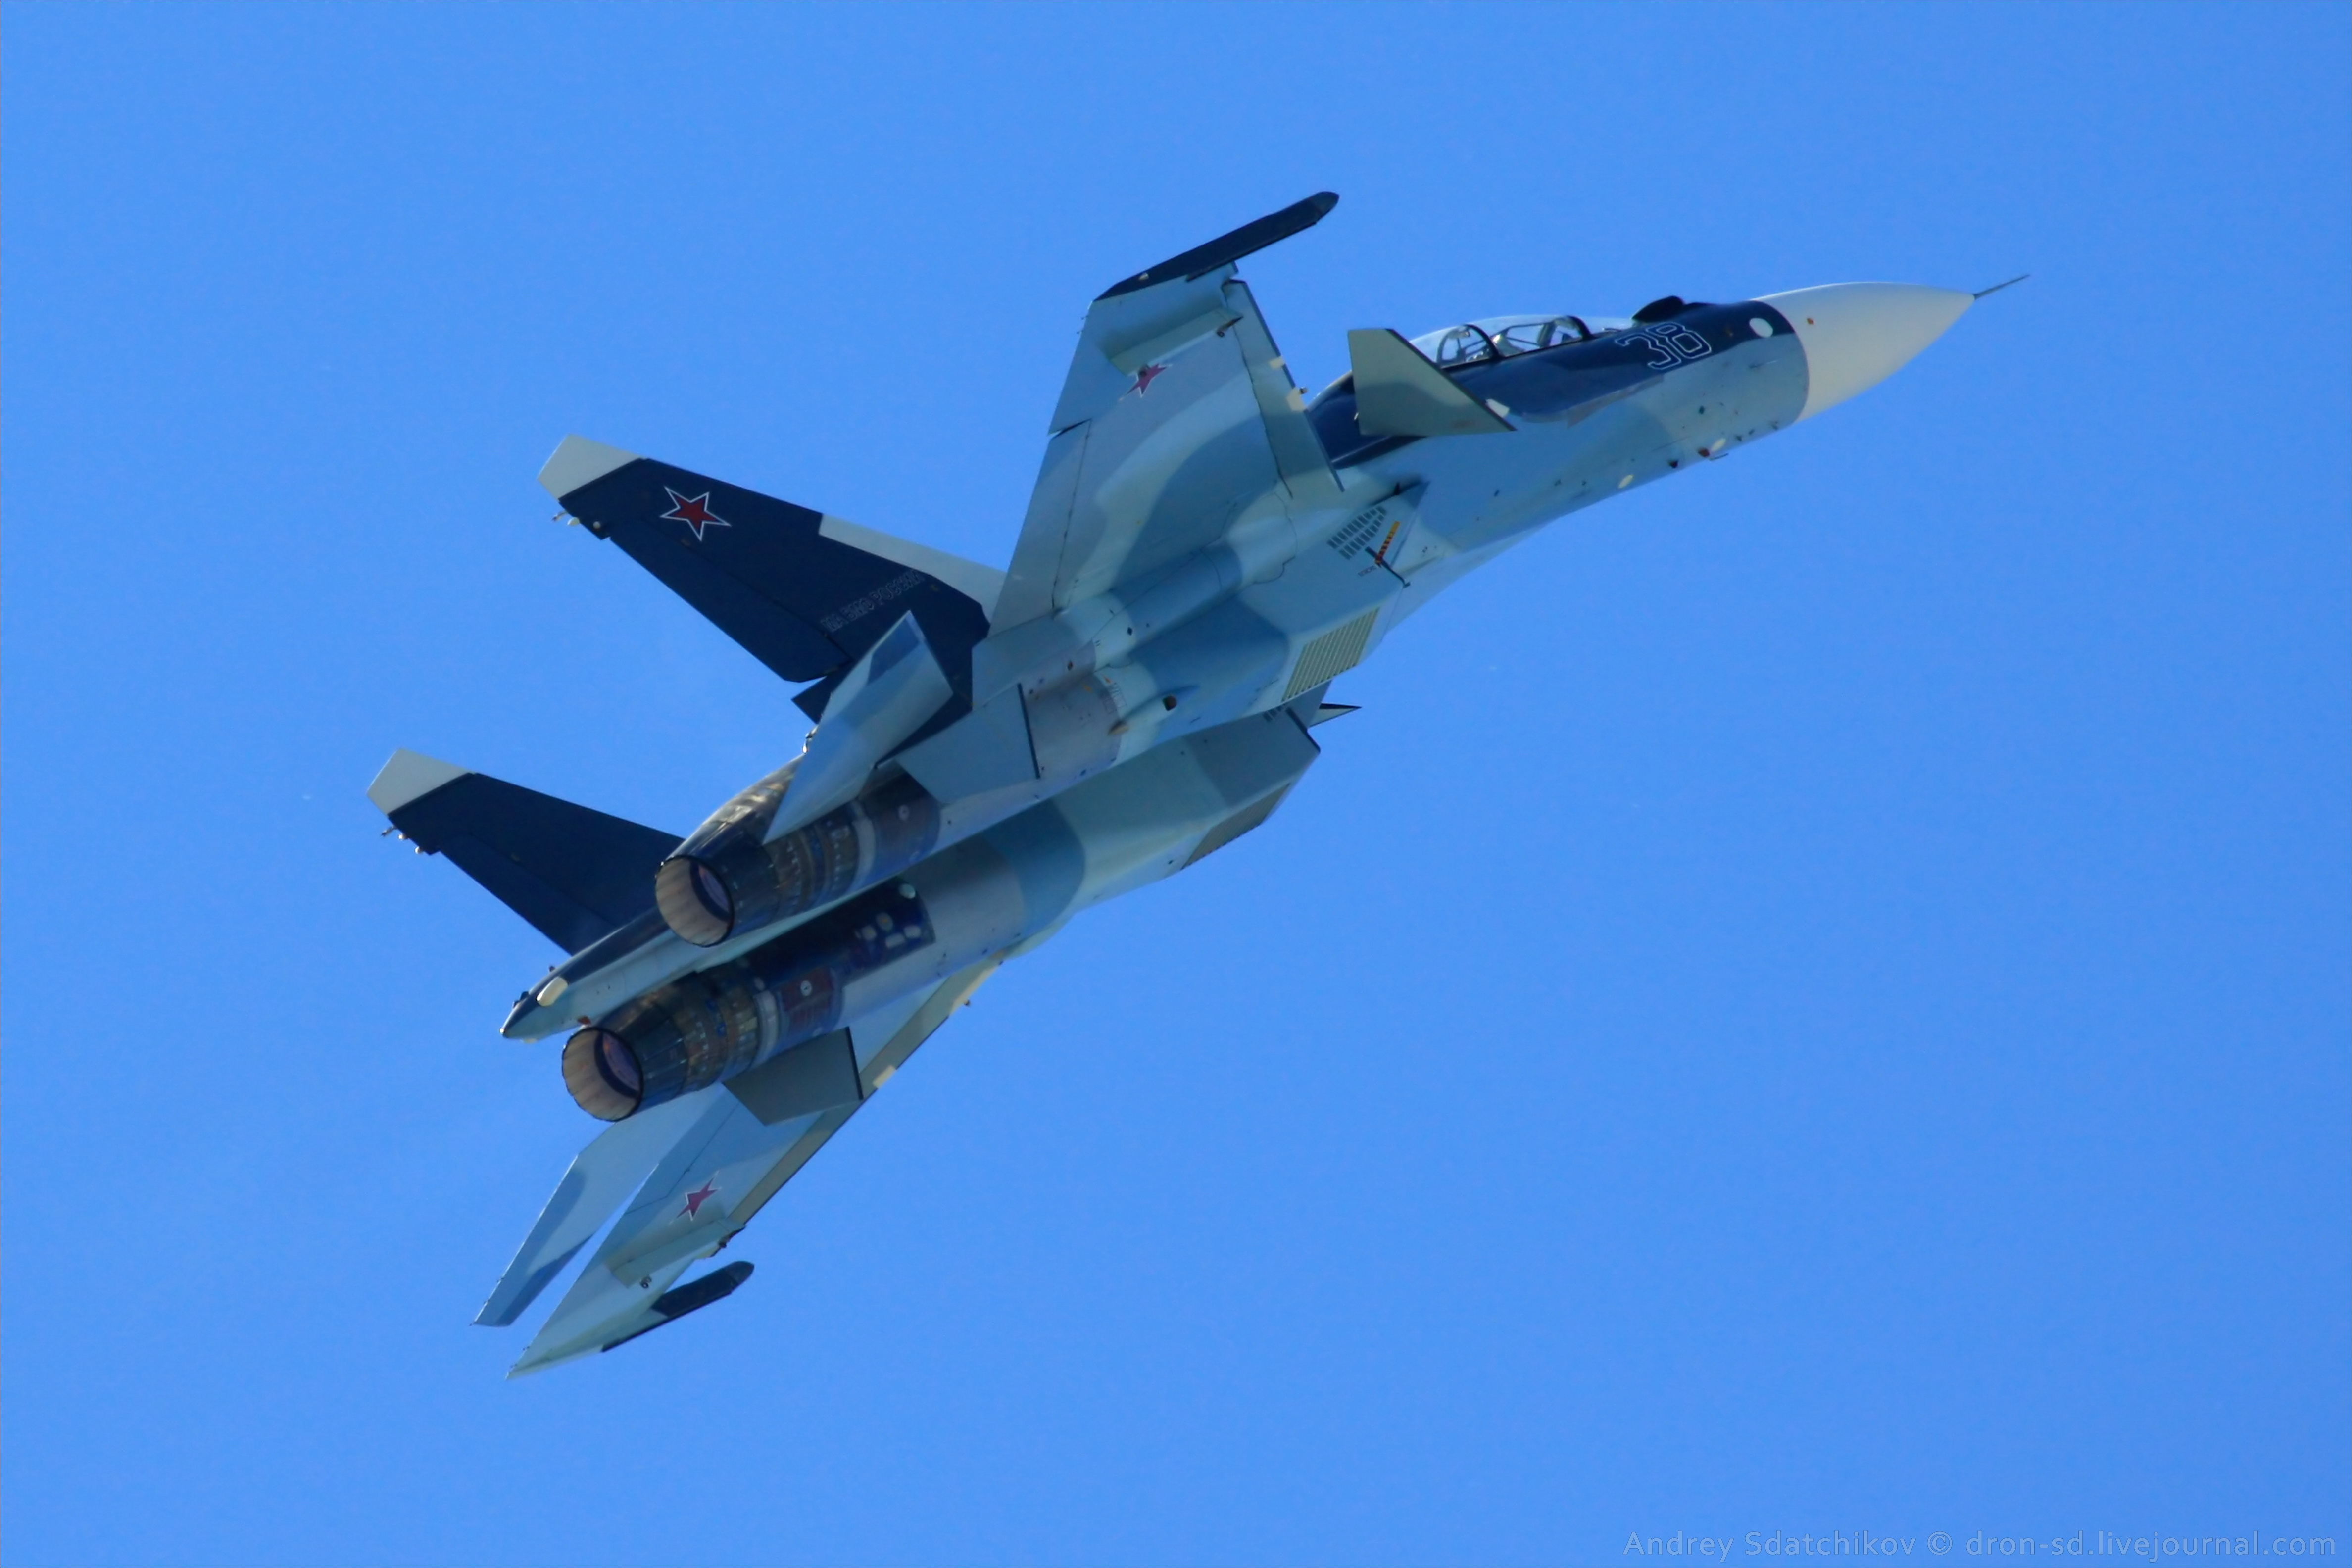 MAKS-2015 Air Show: Photos and Discussion - Page 3 0_12268e_8e82f1d0_orig